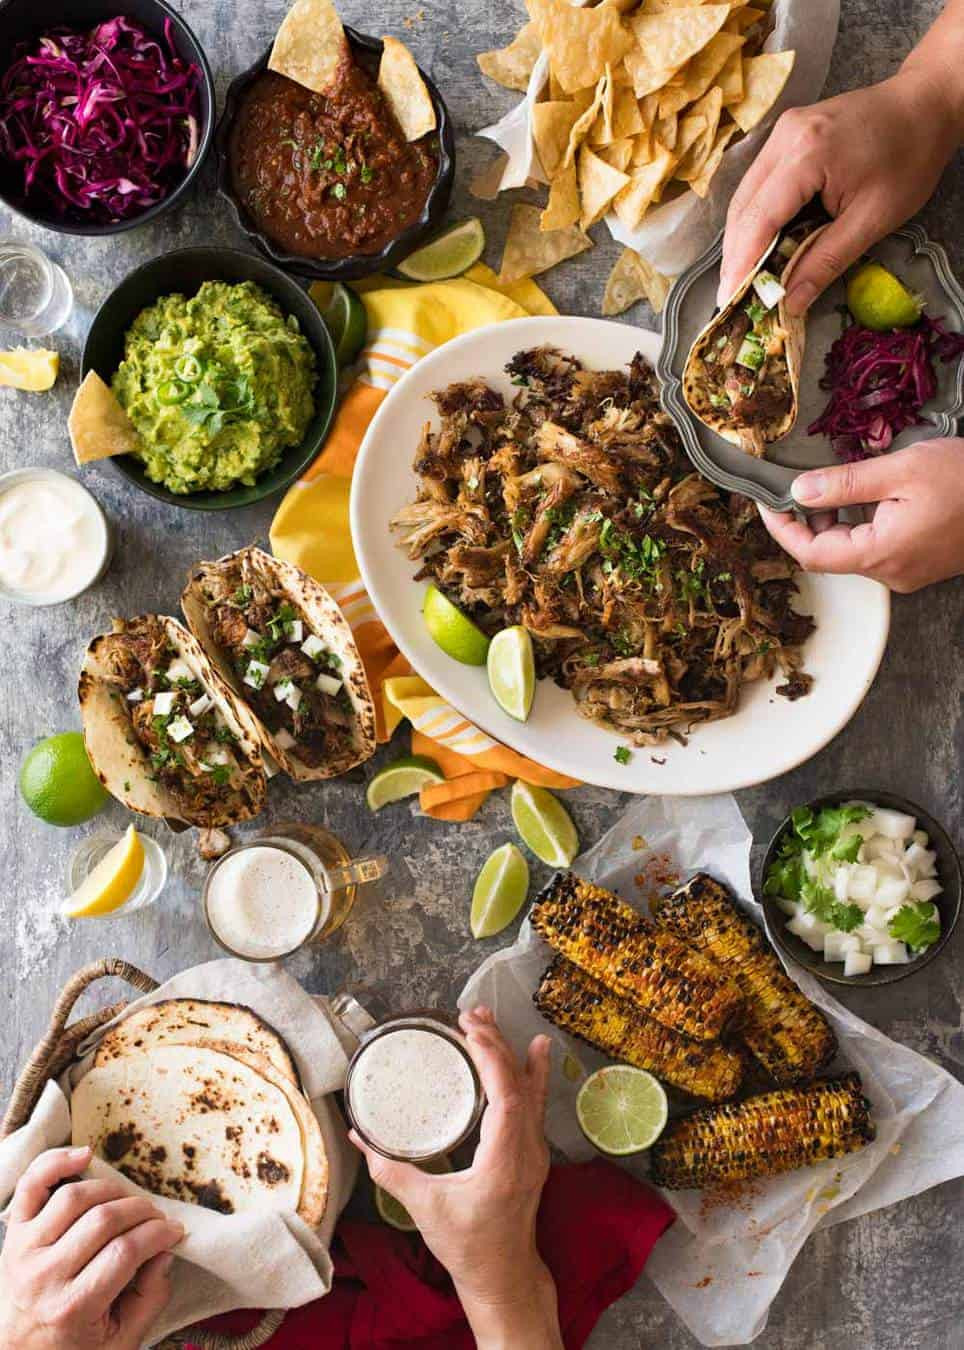 Mexican Dinner Party Menu Ideas  A Big Mexican Fiesta That s Easy to Make